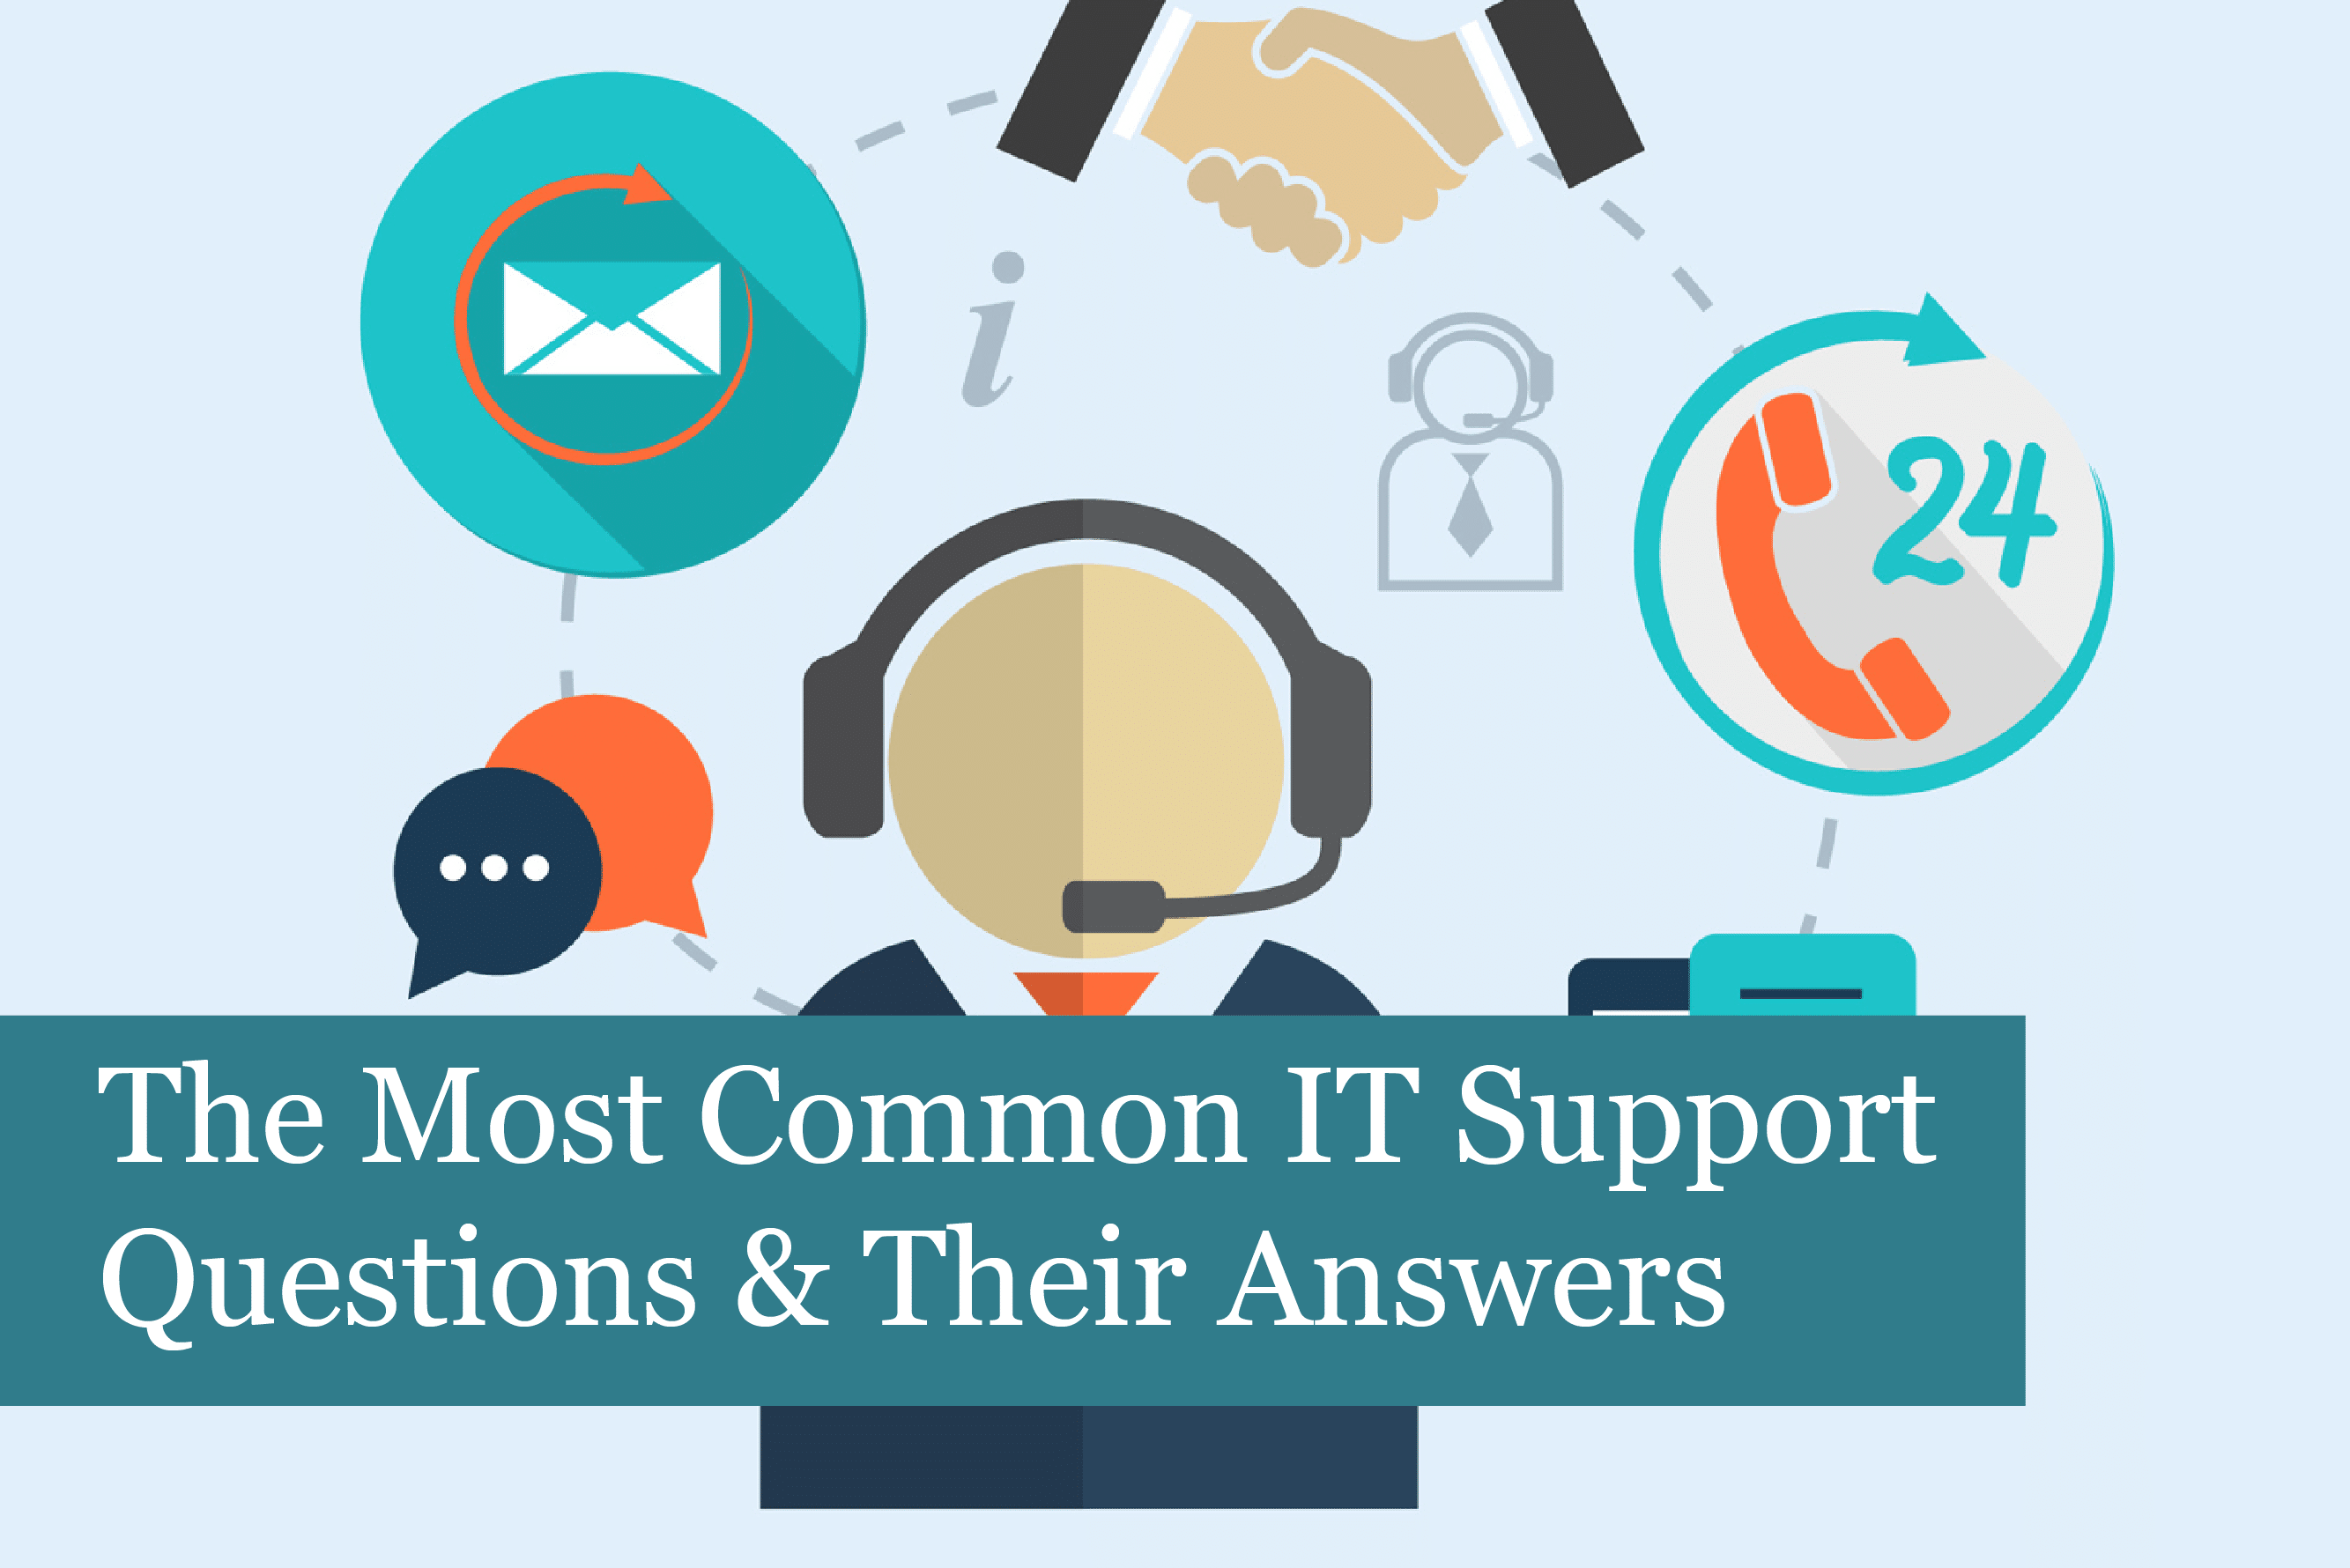 The Most Common IT Support Questions & Their Answers